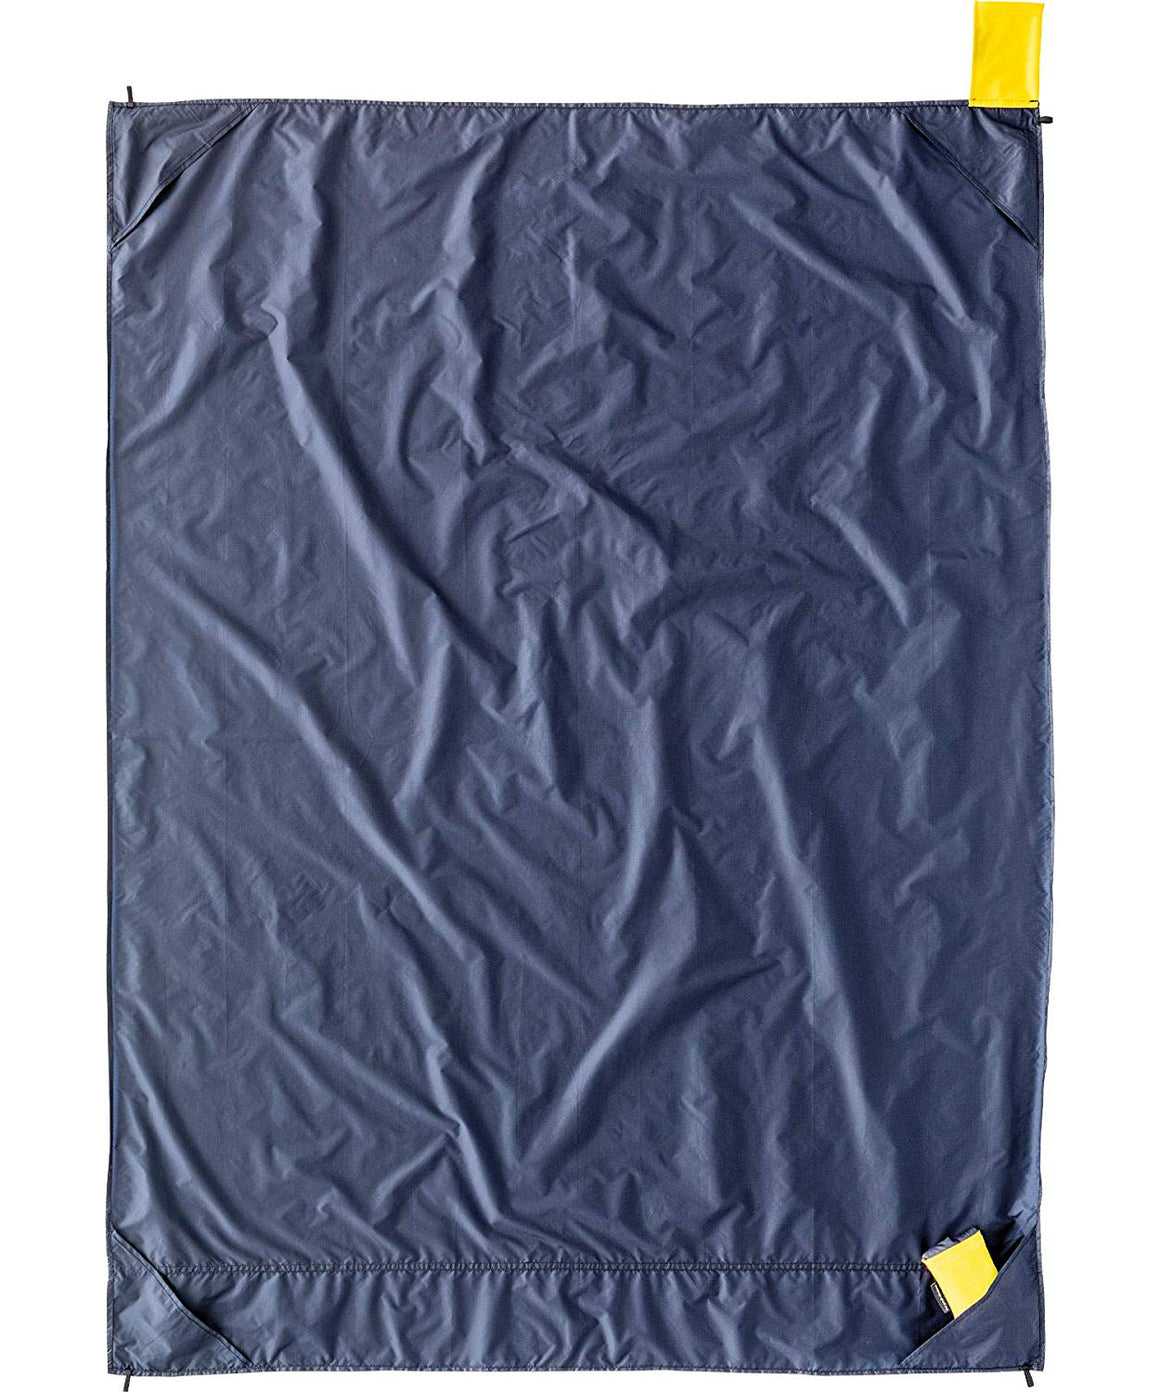 Cocoon Zephyr Blanket Midnight Blue